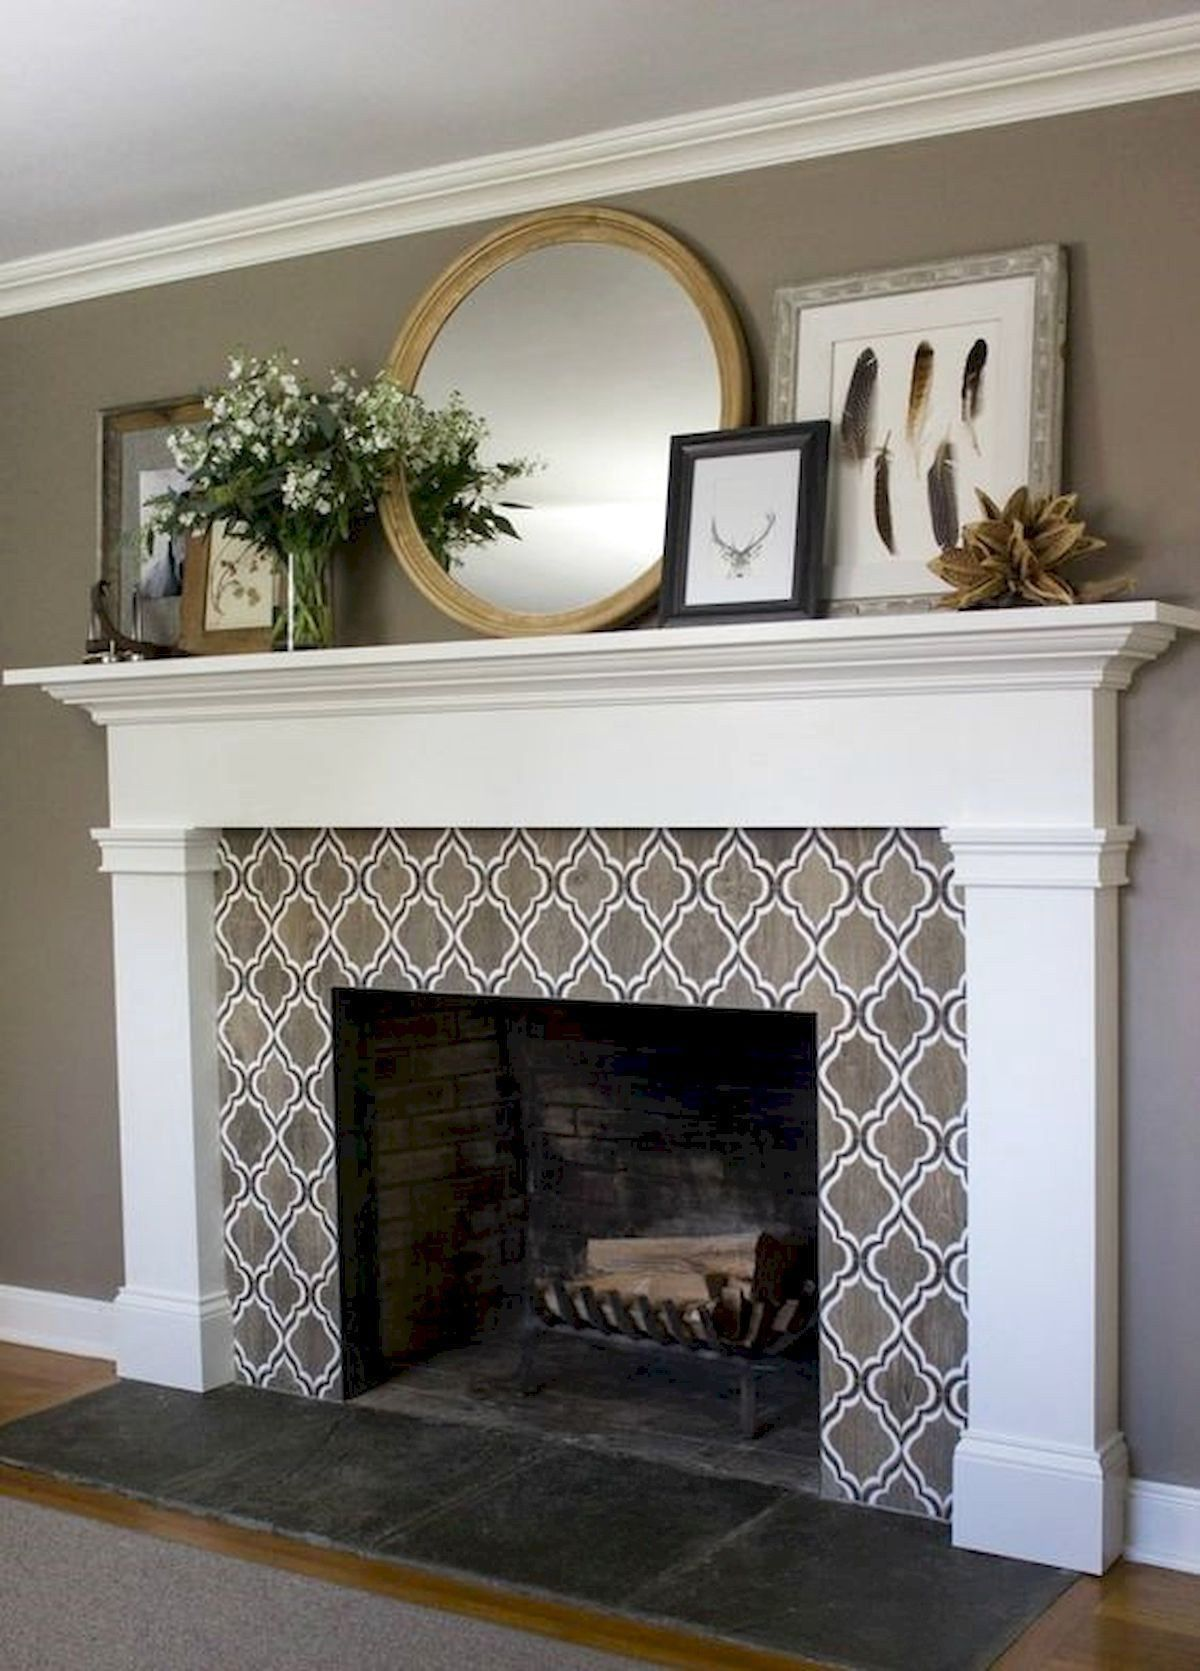 Best Modern Farmhouse Fireplace Mantel Decor Ideas Frugal Living Farmhouse Fireplace Mantels Fireplace Mantel Decor Craftsman Fireplace